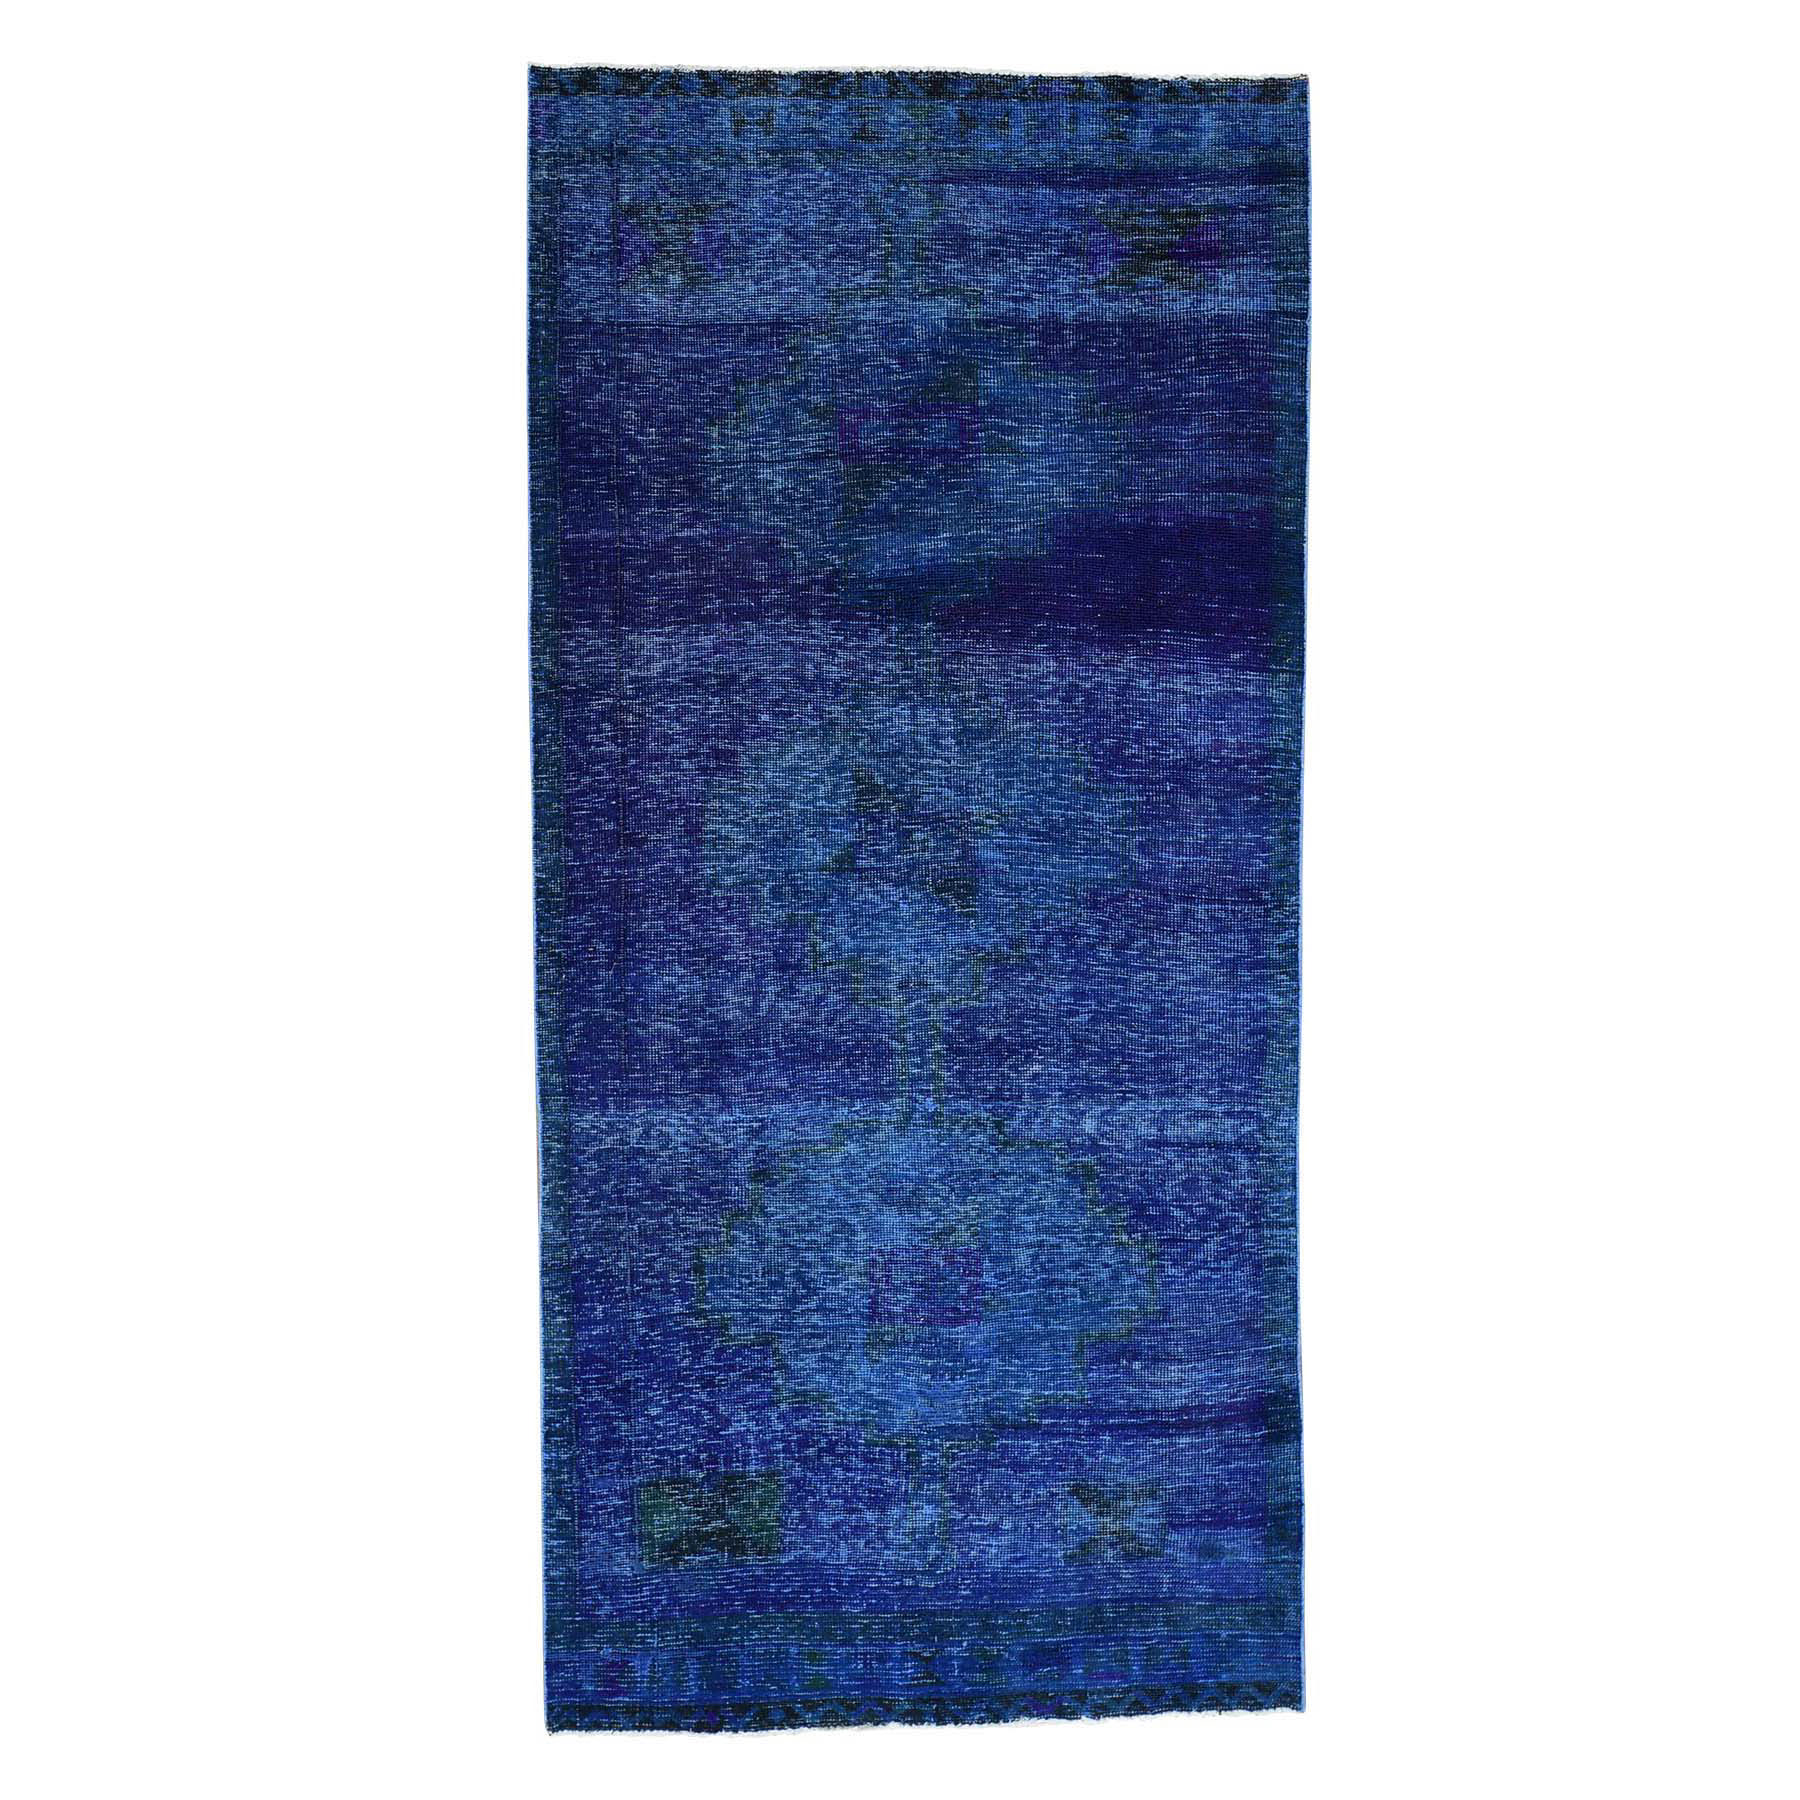 Fetneh Collection And Vintage Overdyed Collection Hand Knotted Blue Rug No: 0175266